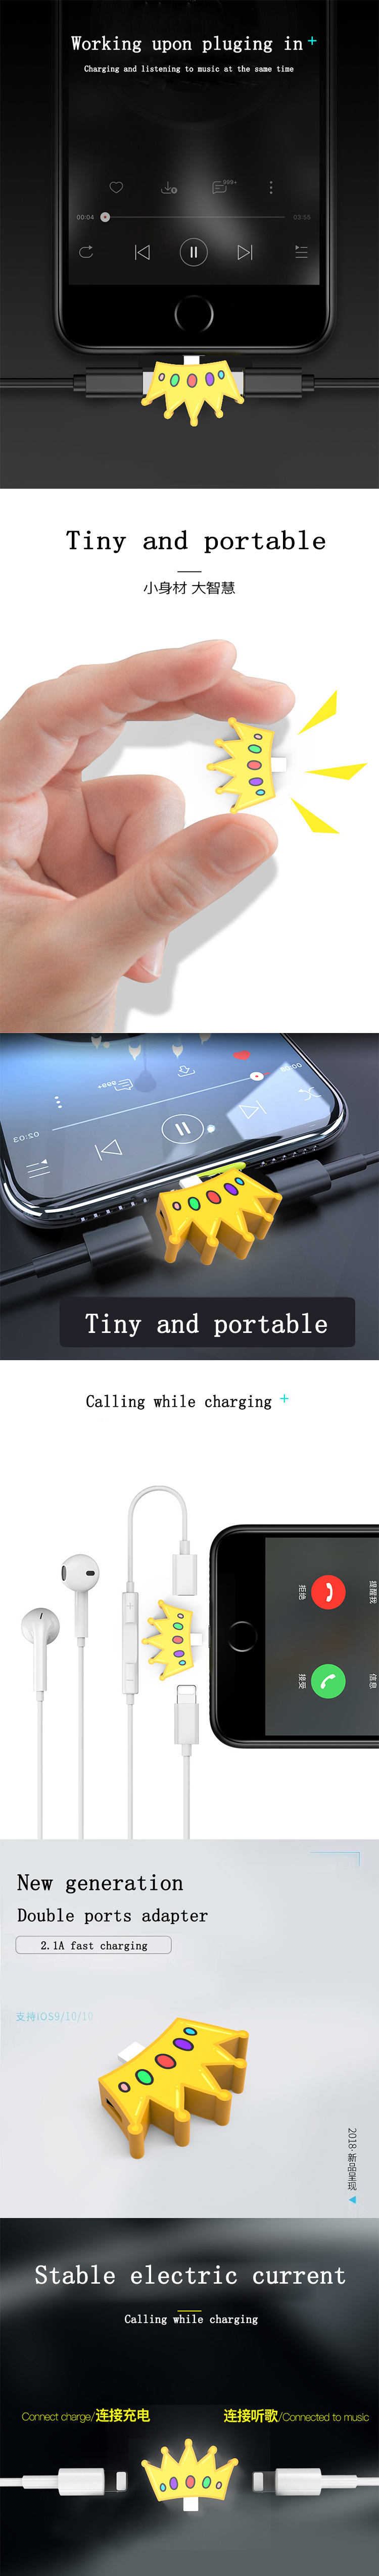 2018 new design charging and listening adapter  for iPhone Series